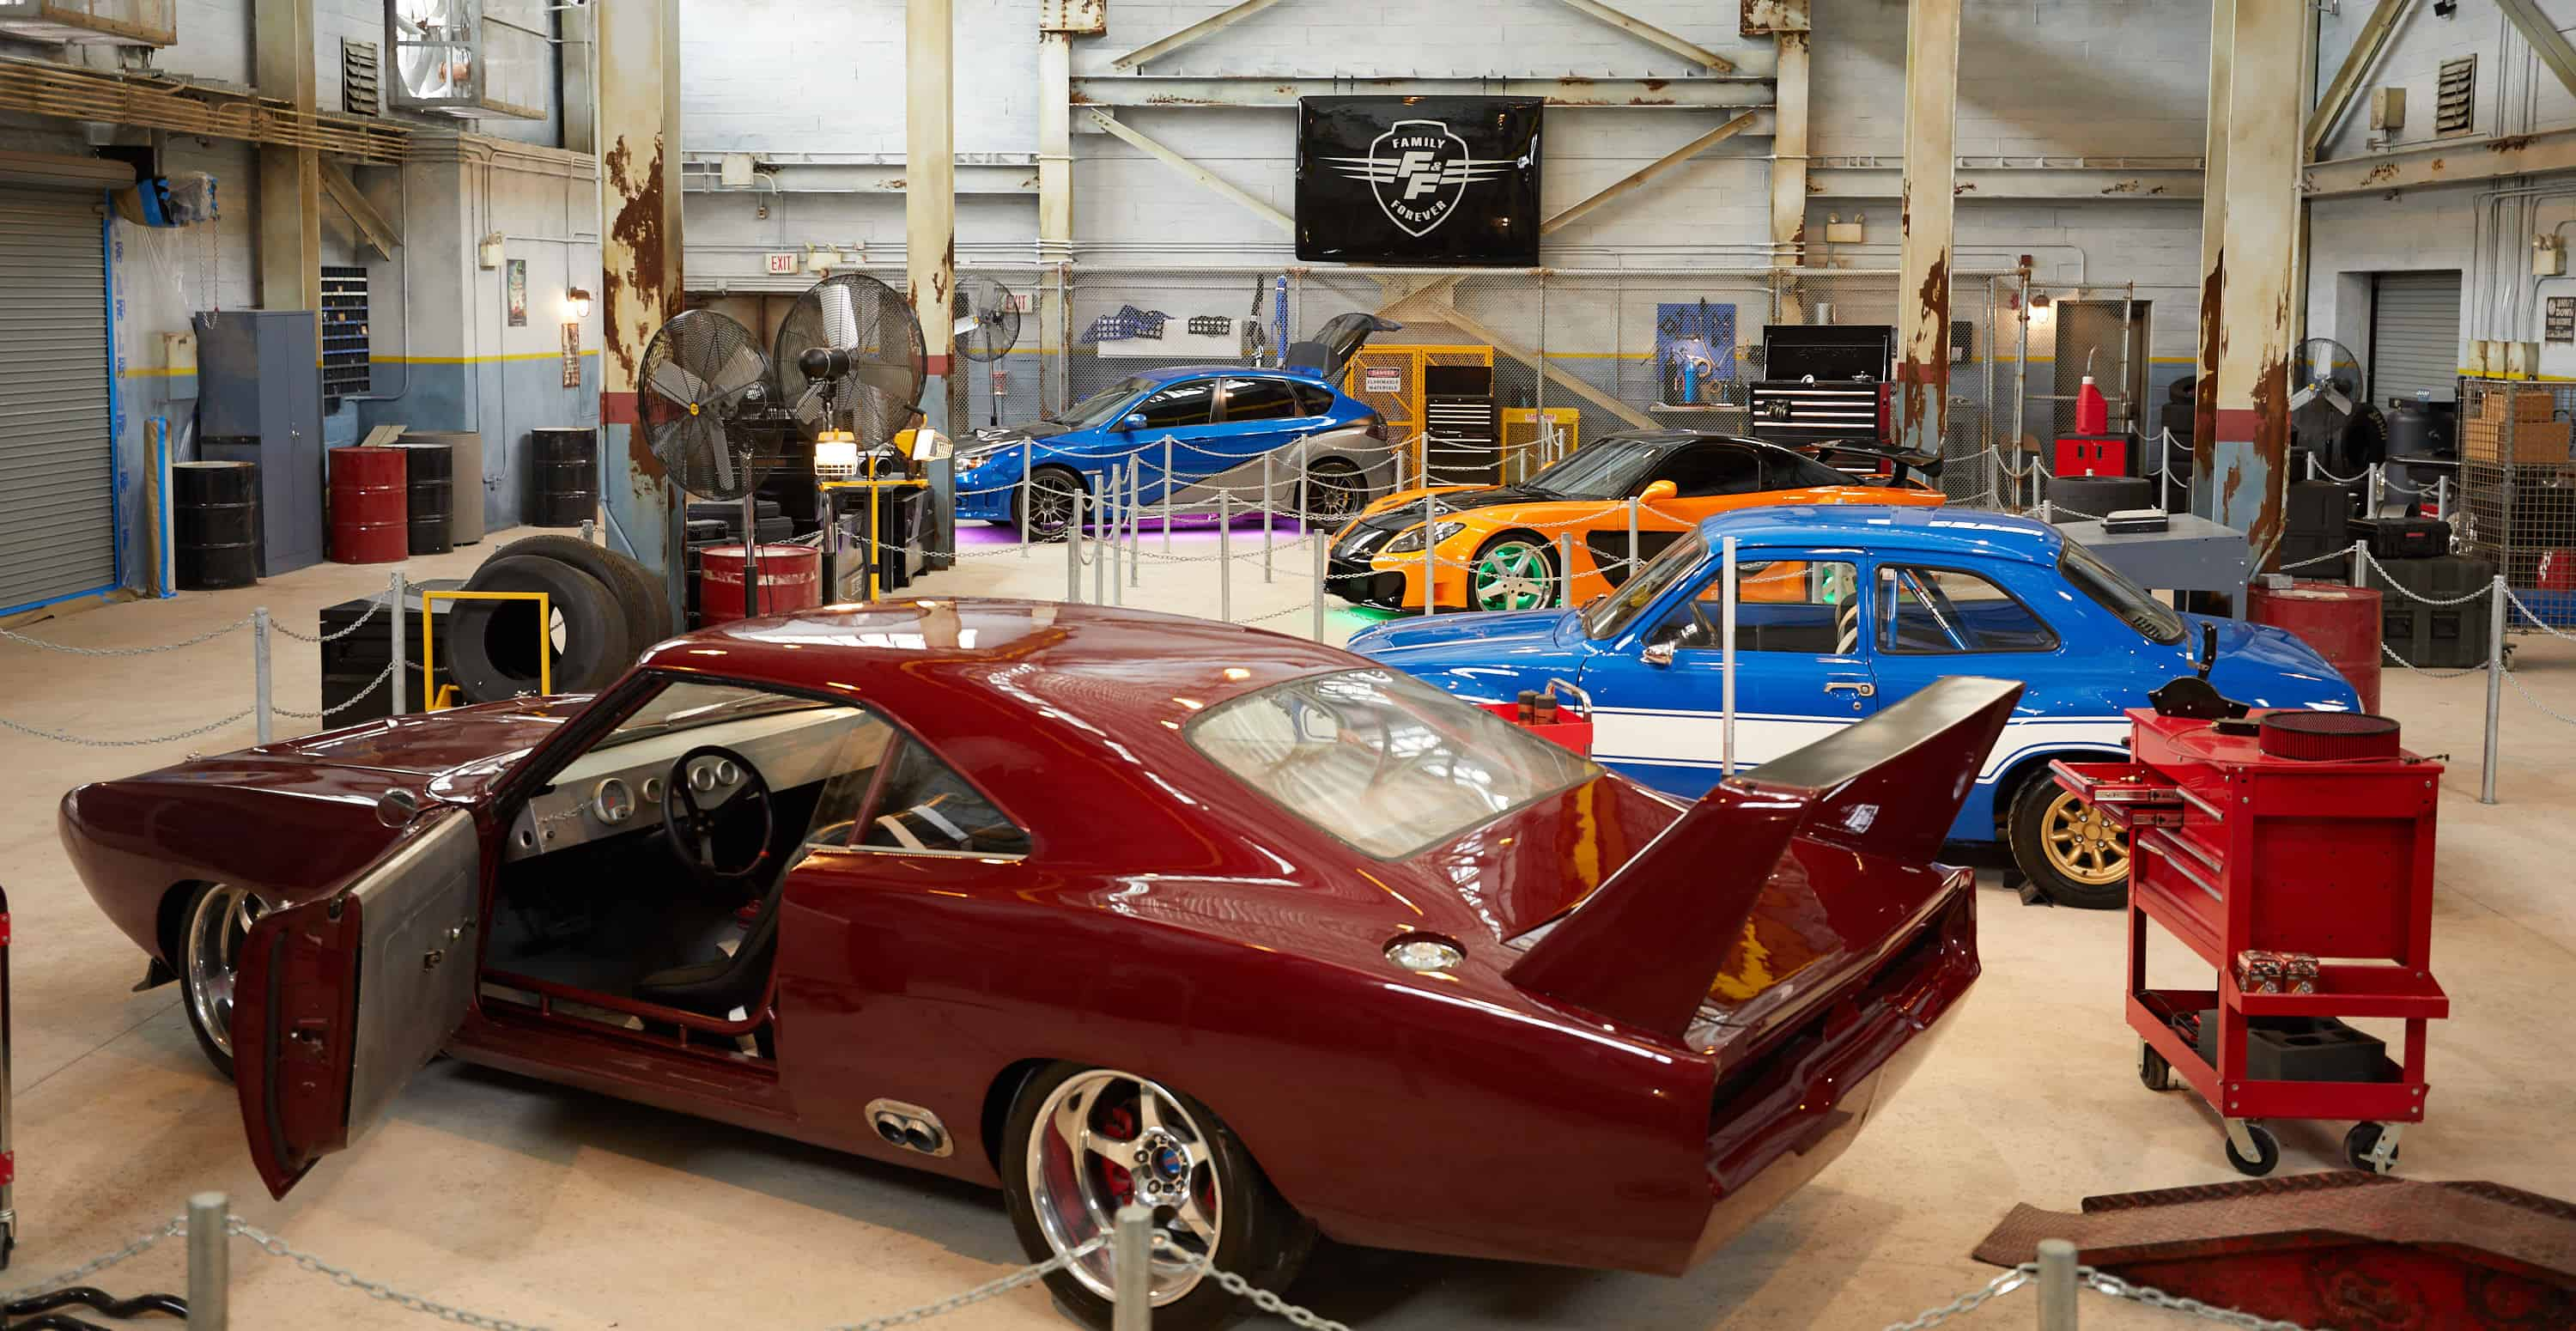 Fast & Furious – Supercharged's story explained